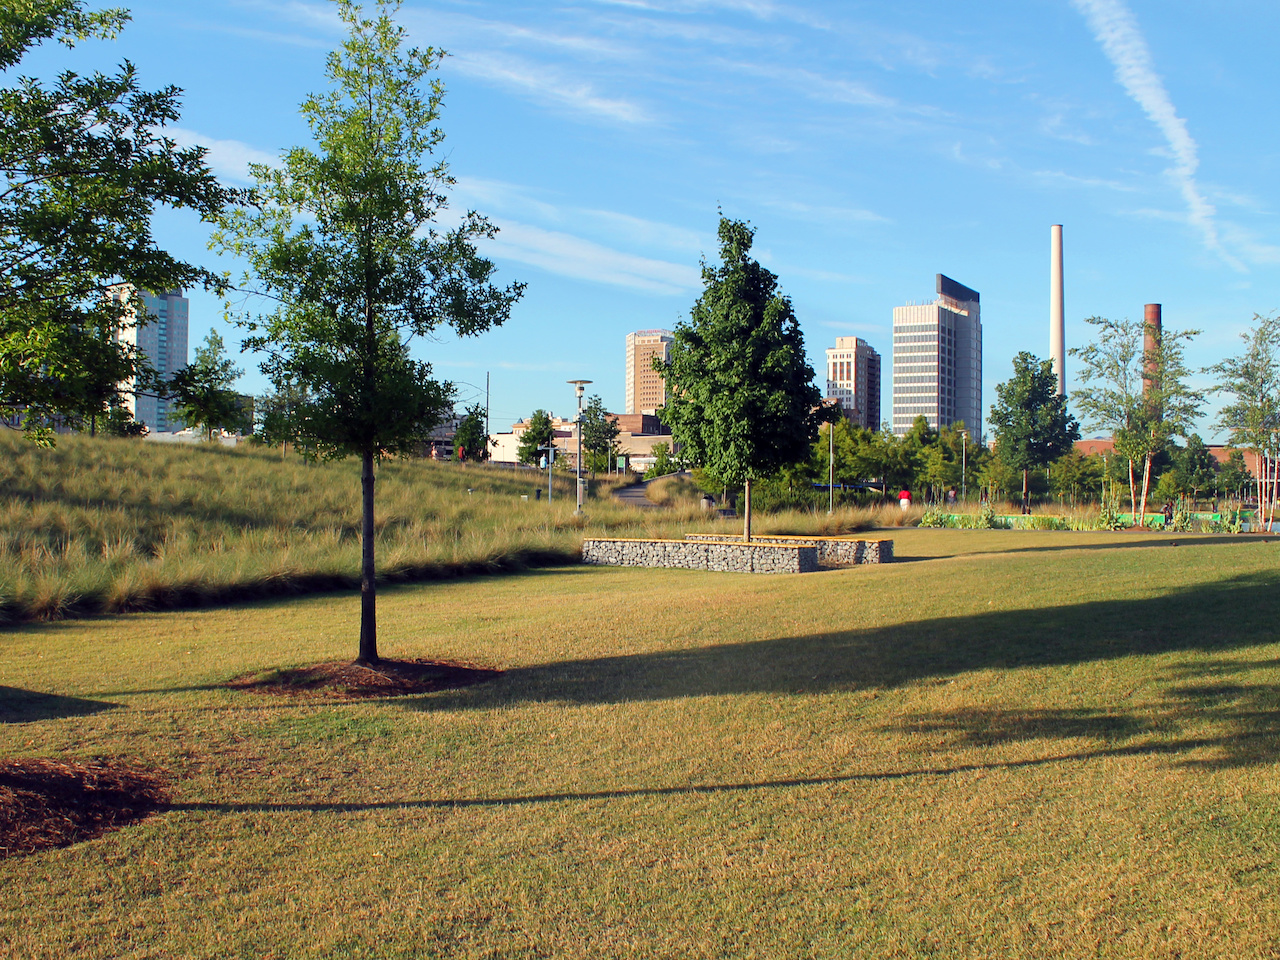 There is ample space for picnics, frisbee or simply reading a book on a blanket at Railroad Park.